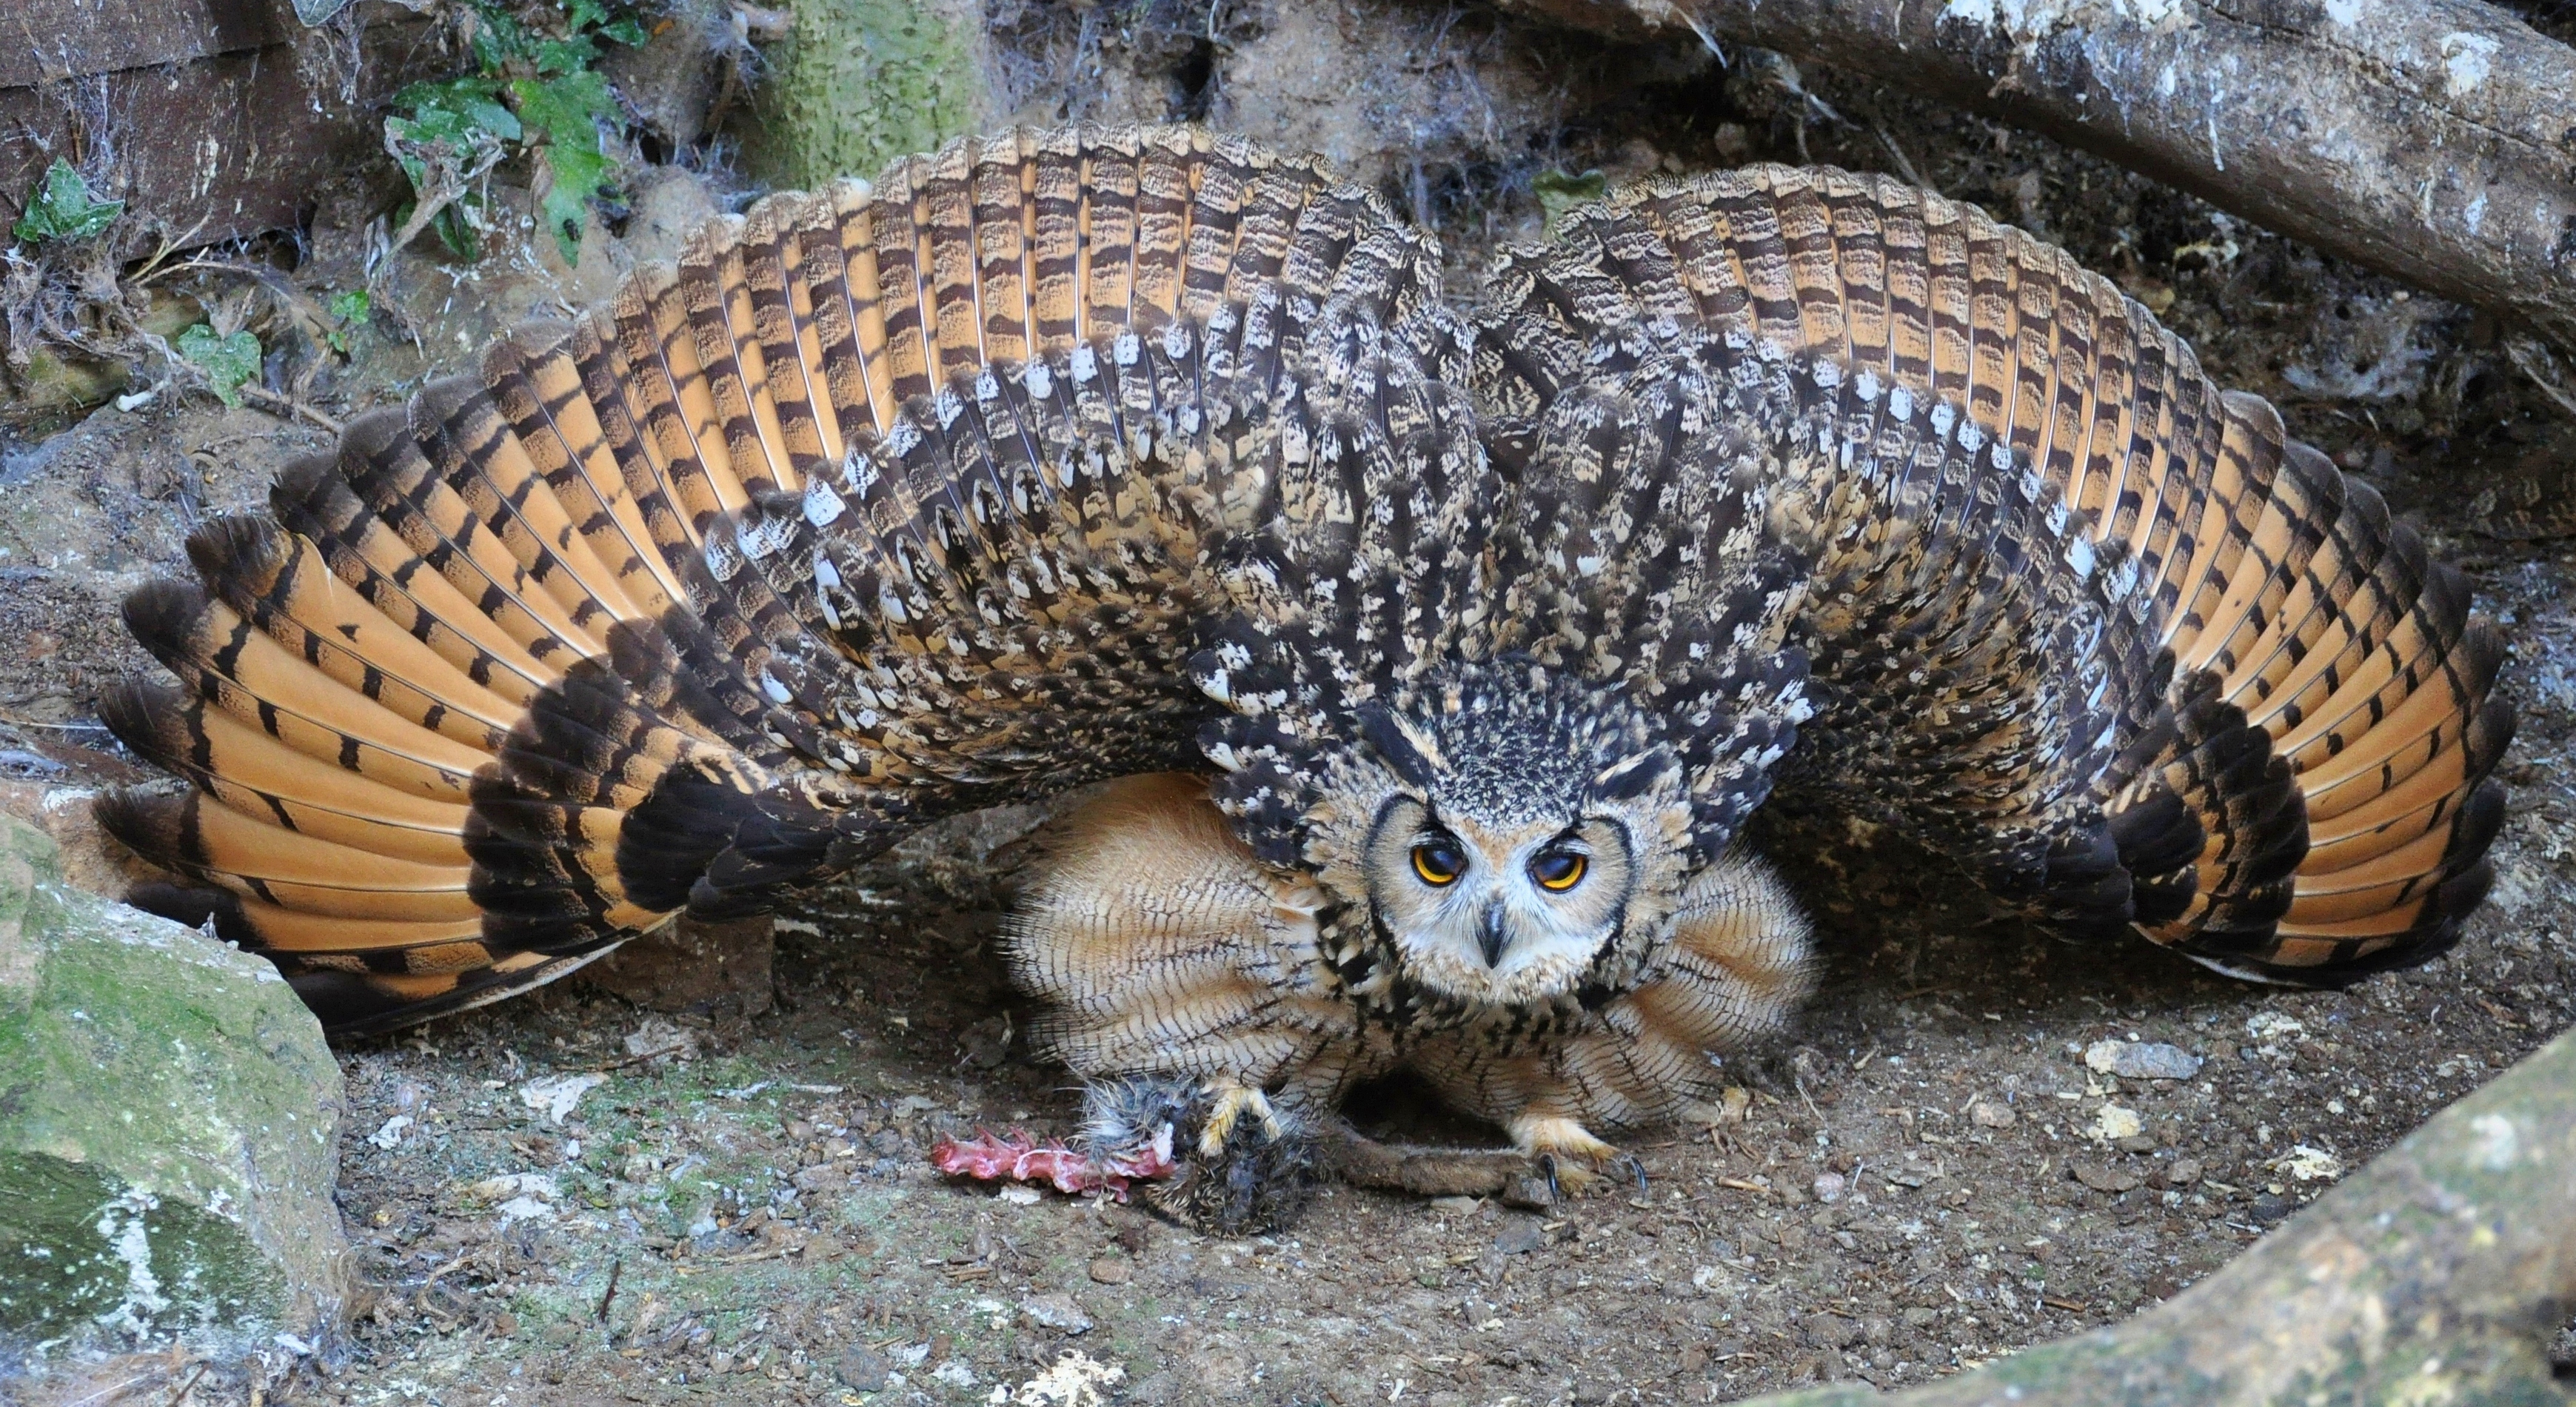 Owl spreading its wings.